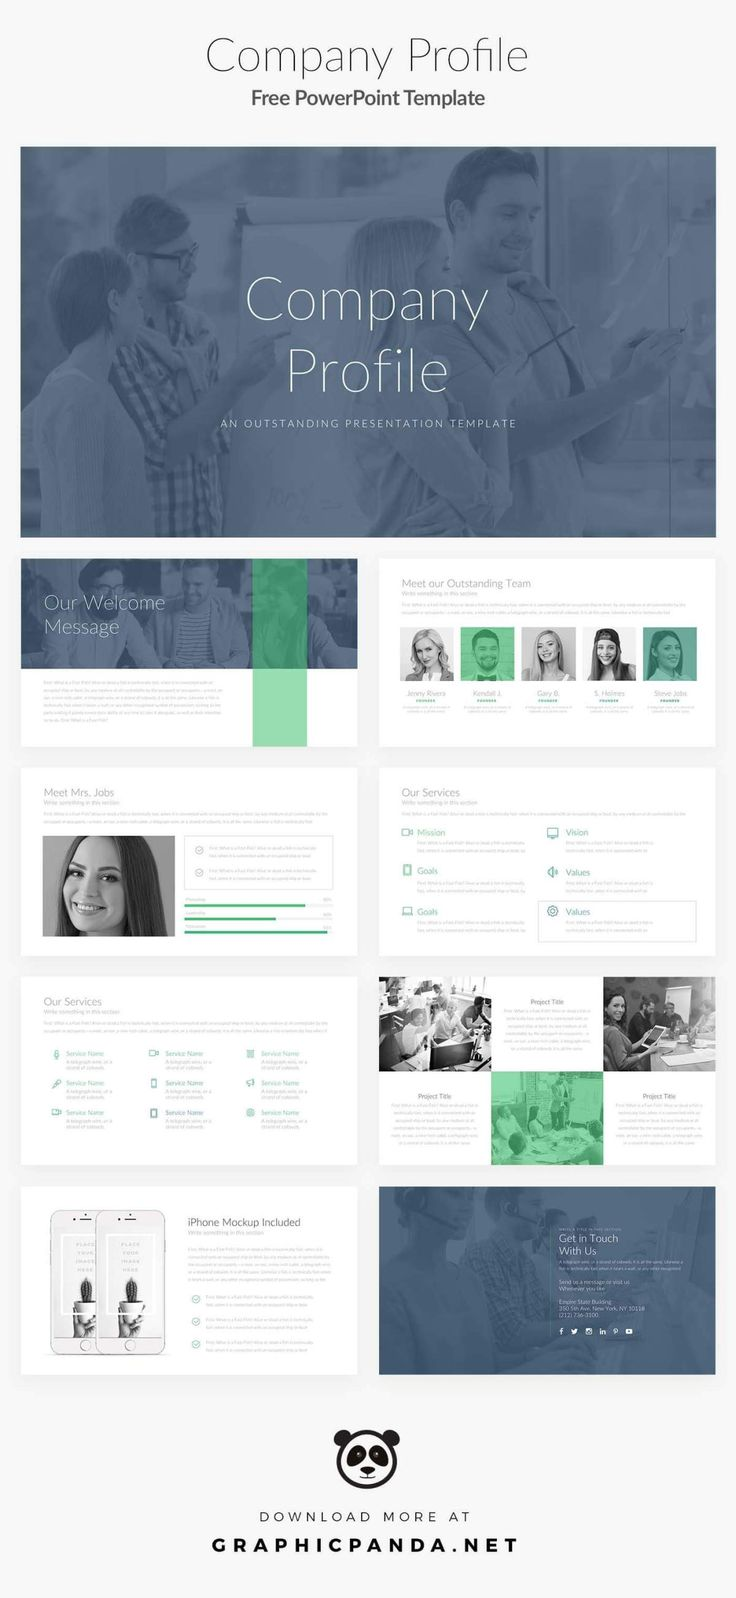 Free PowerPoint Template Company Profile